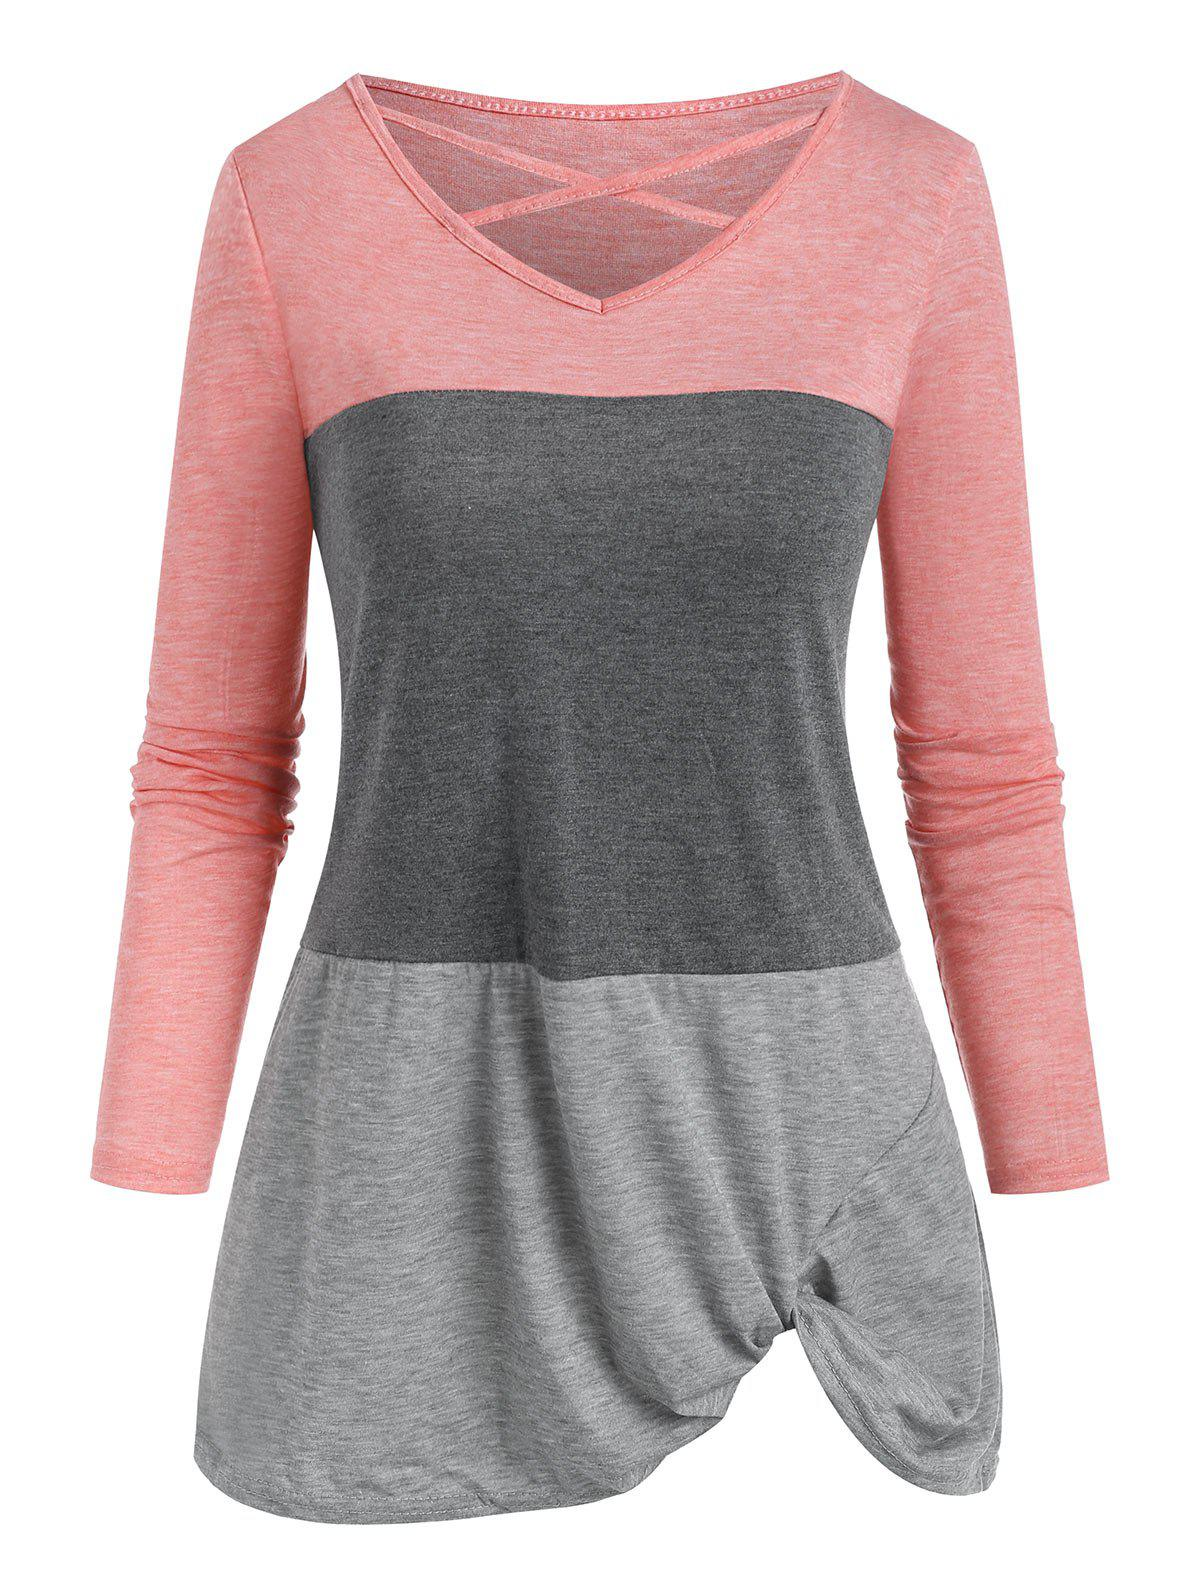 Fancy Colorblock Criss Cross Twisted T-shirt